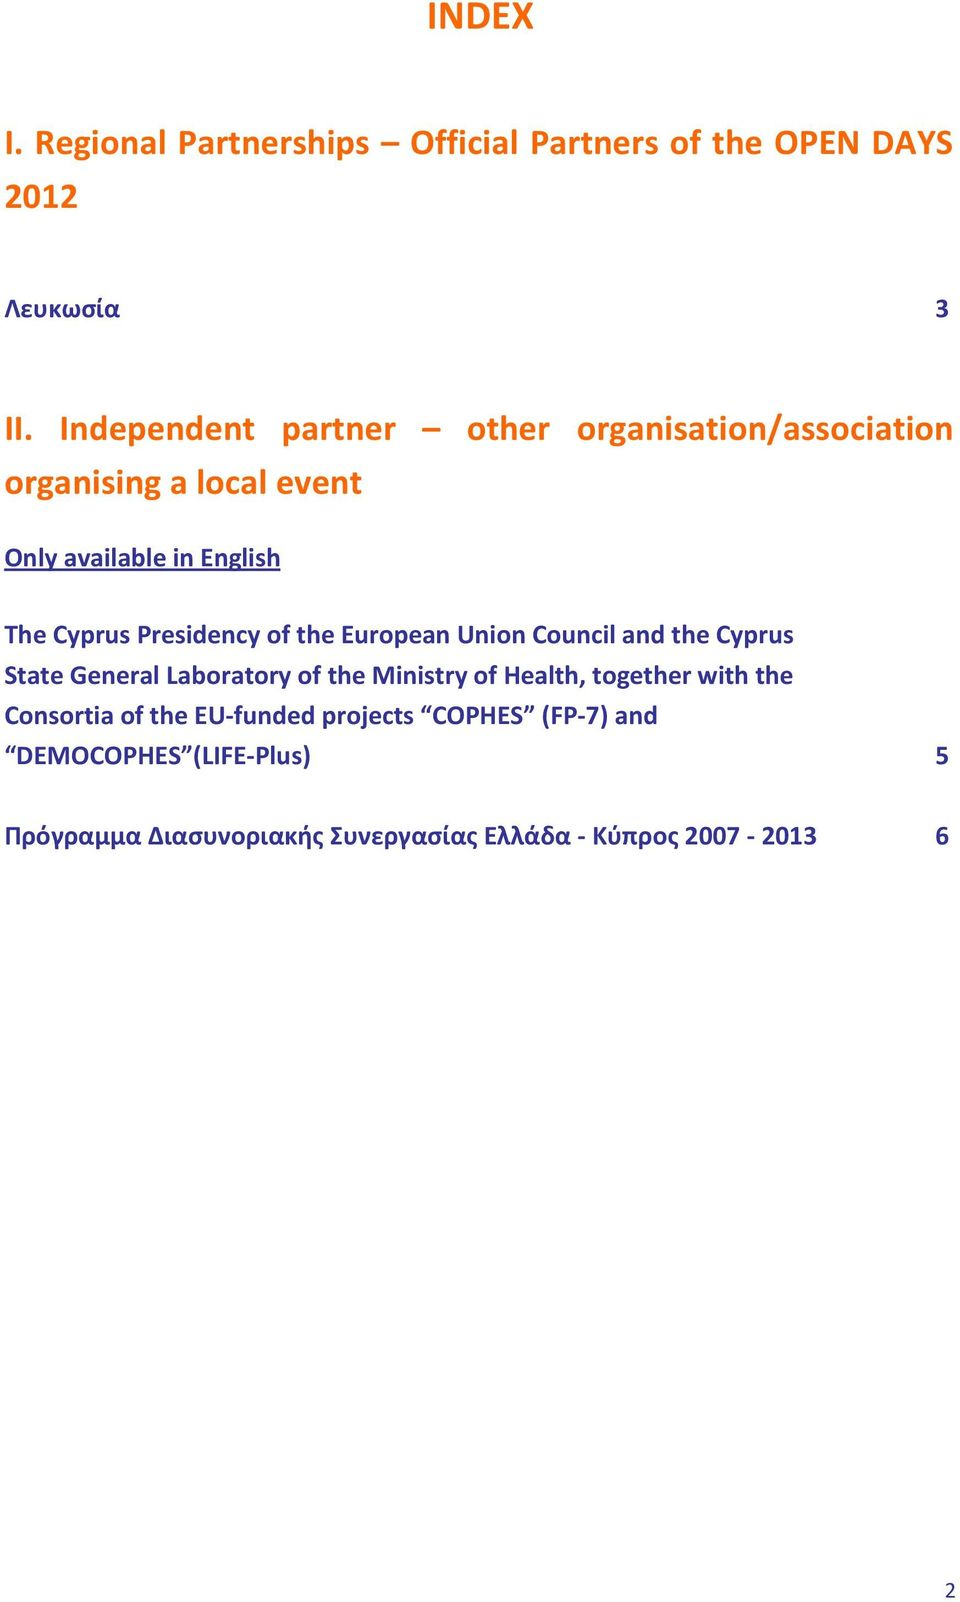 Presidency of the European Union Council and the Cyprus State General Laboratory of the Ministry of Health, together